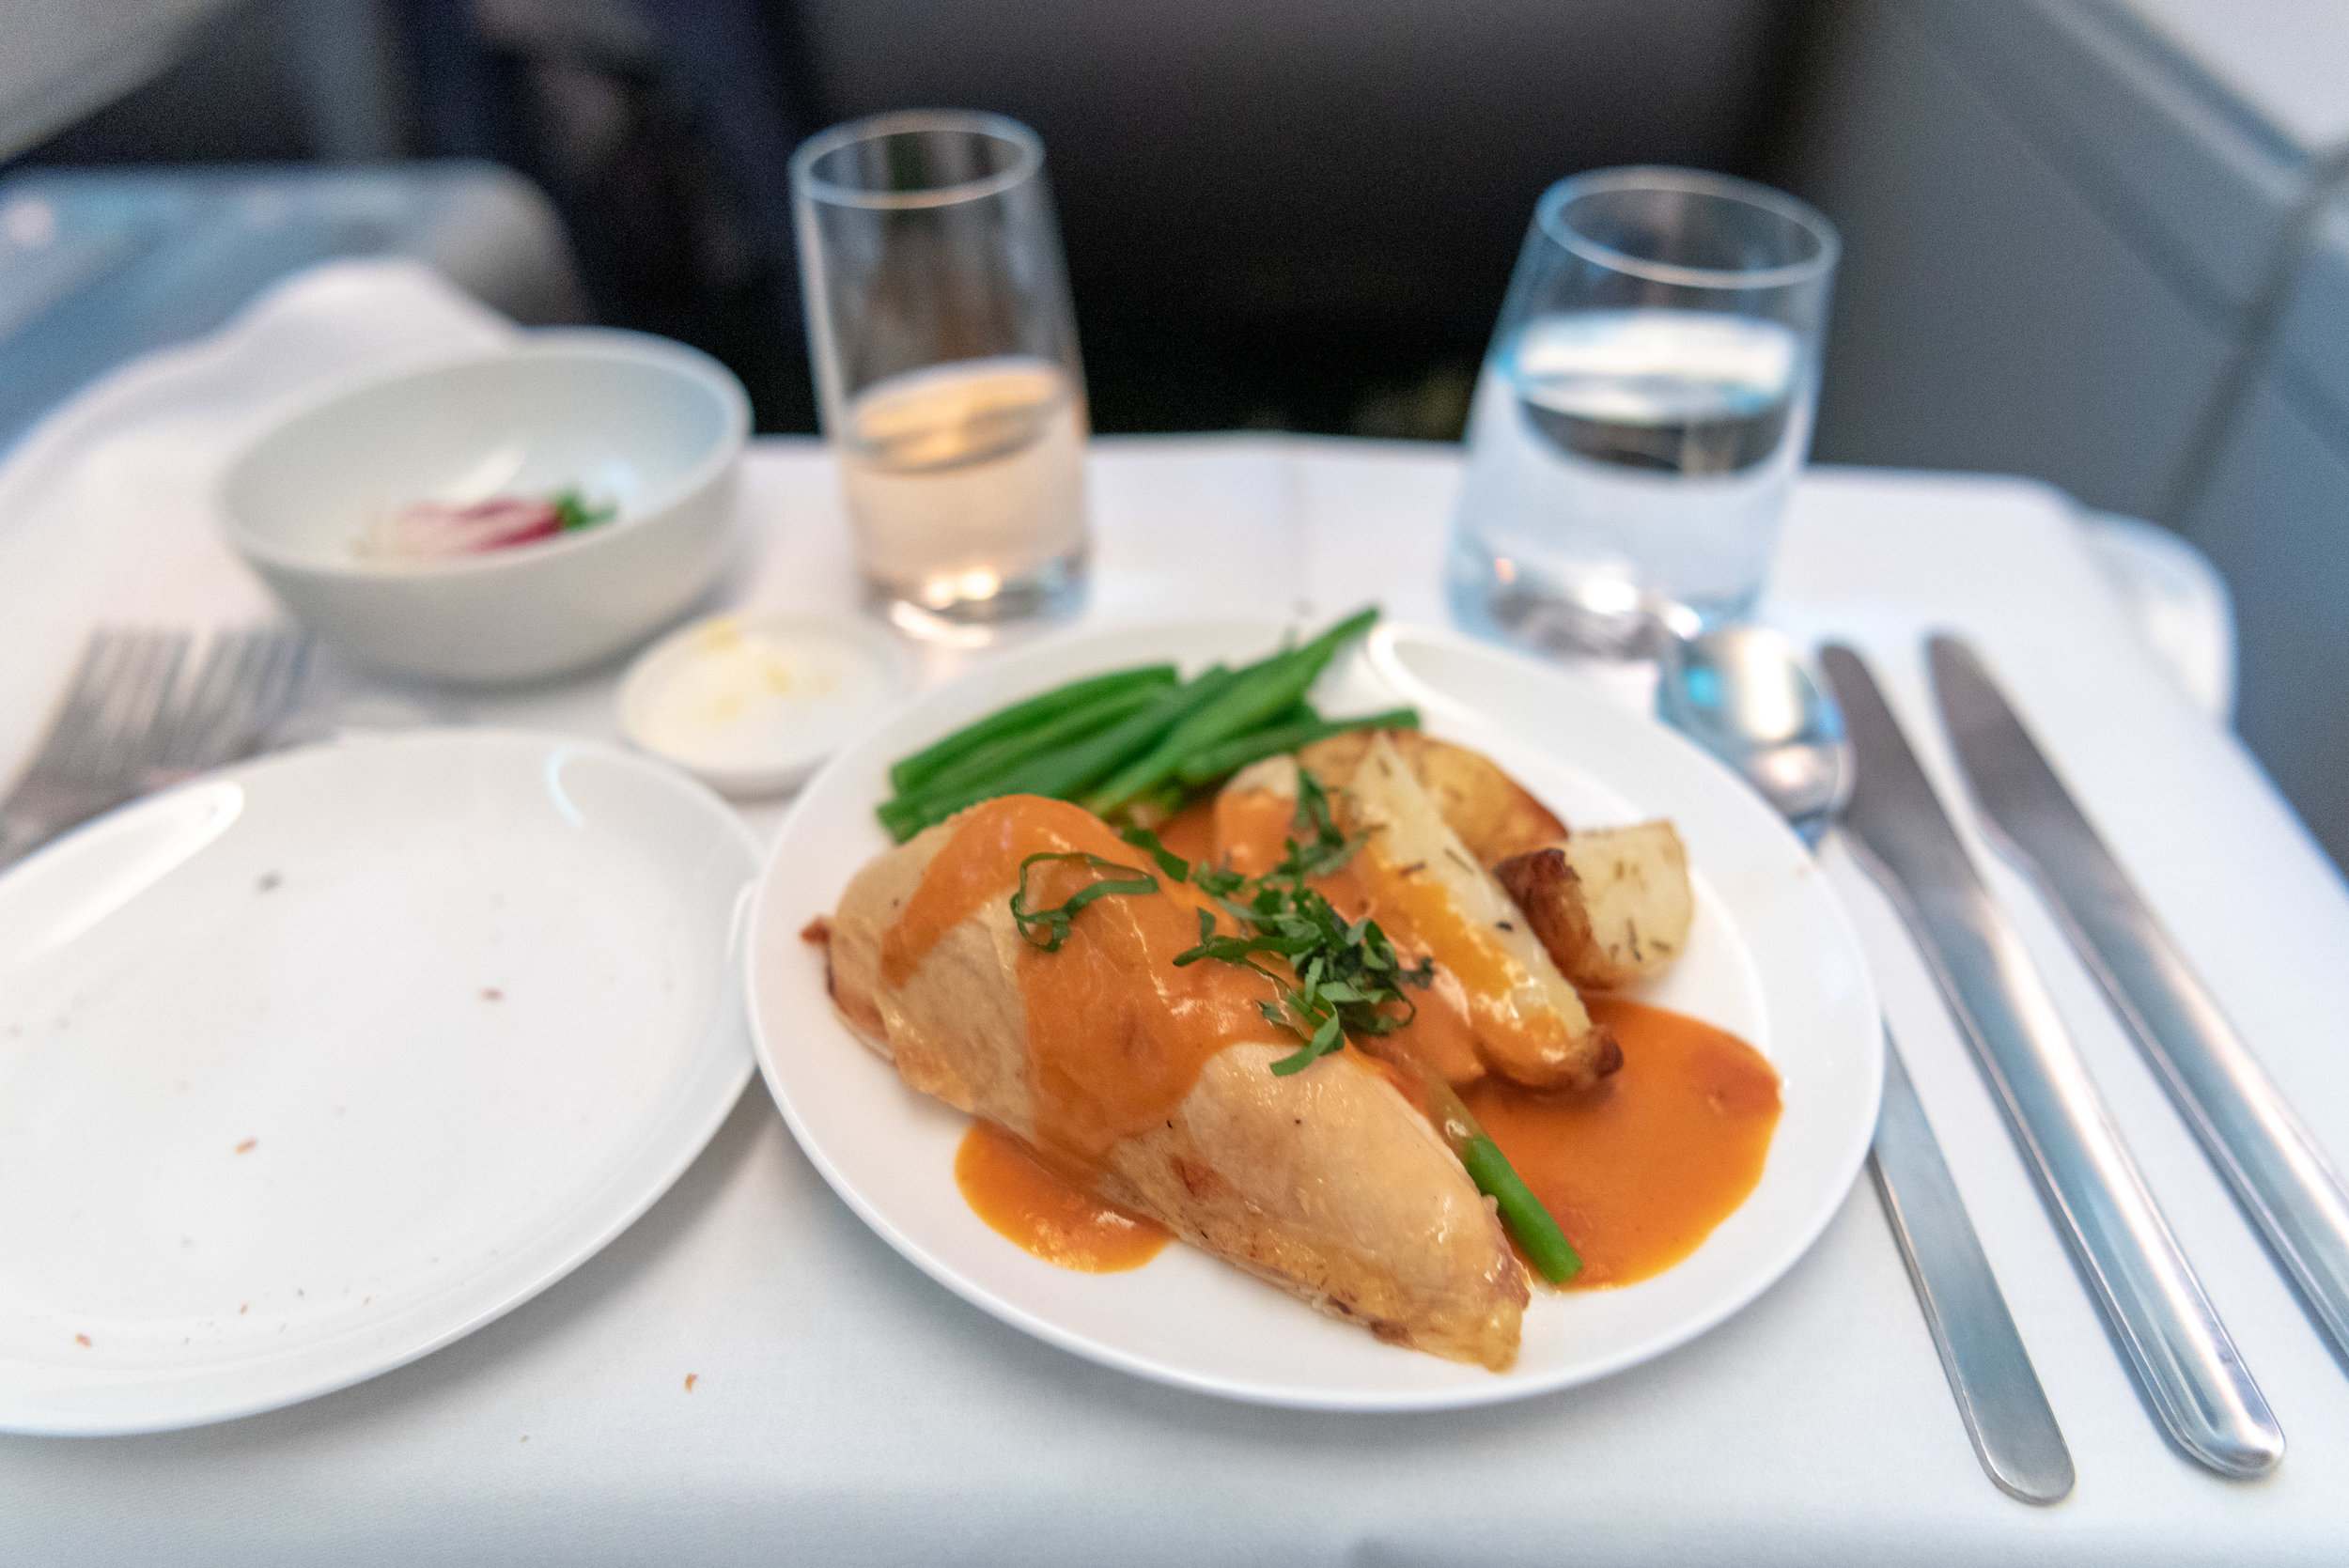 Roast Chicken with Potatoes, Green Beans and Chipotle Lentil Sauce  Qantas Business Class QF36 A380-800 - SIN to MEL